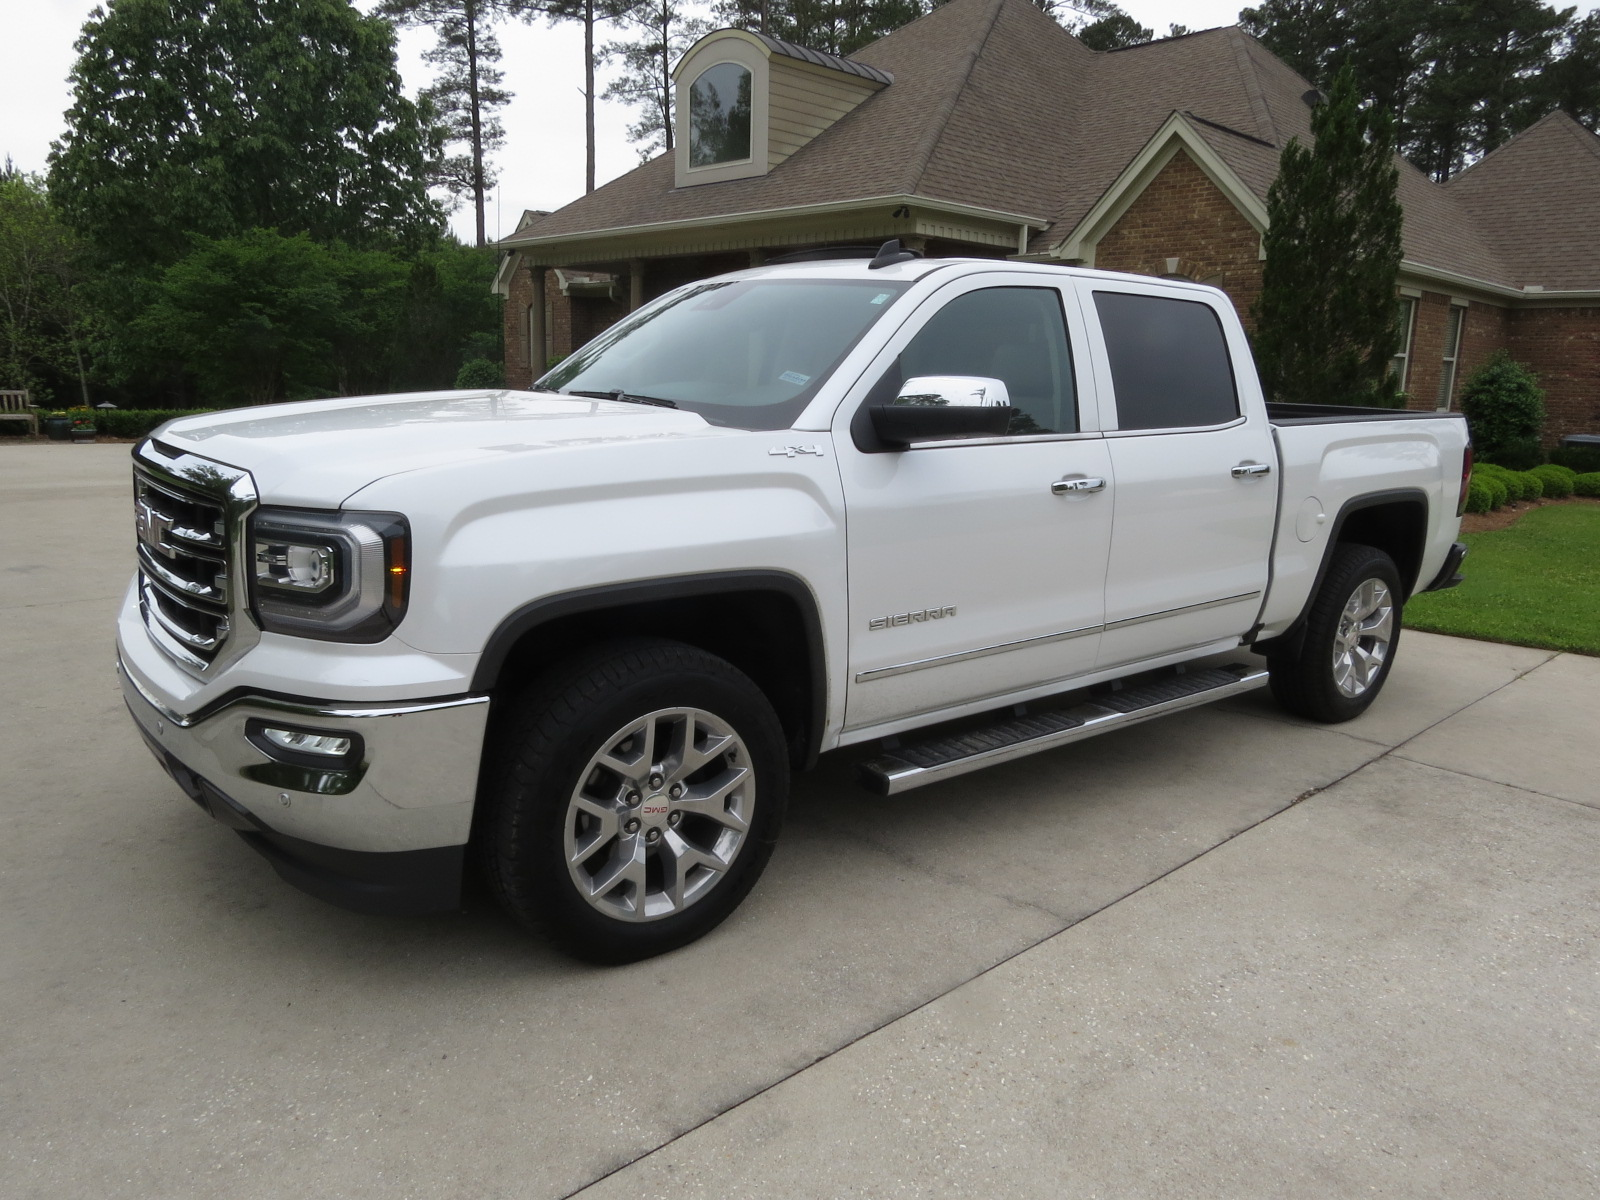 Used Car Listings New Bay Springs Used Vehicles for Sale